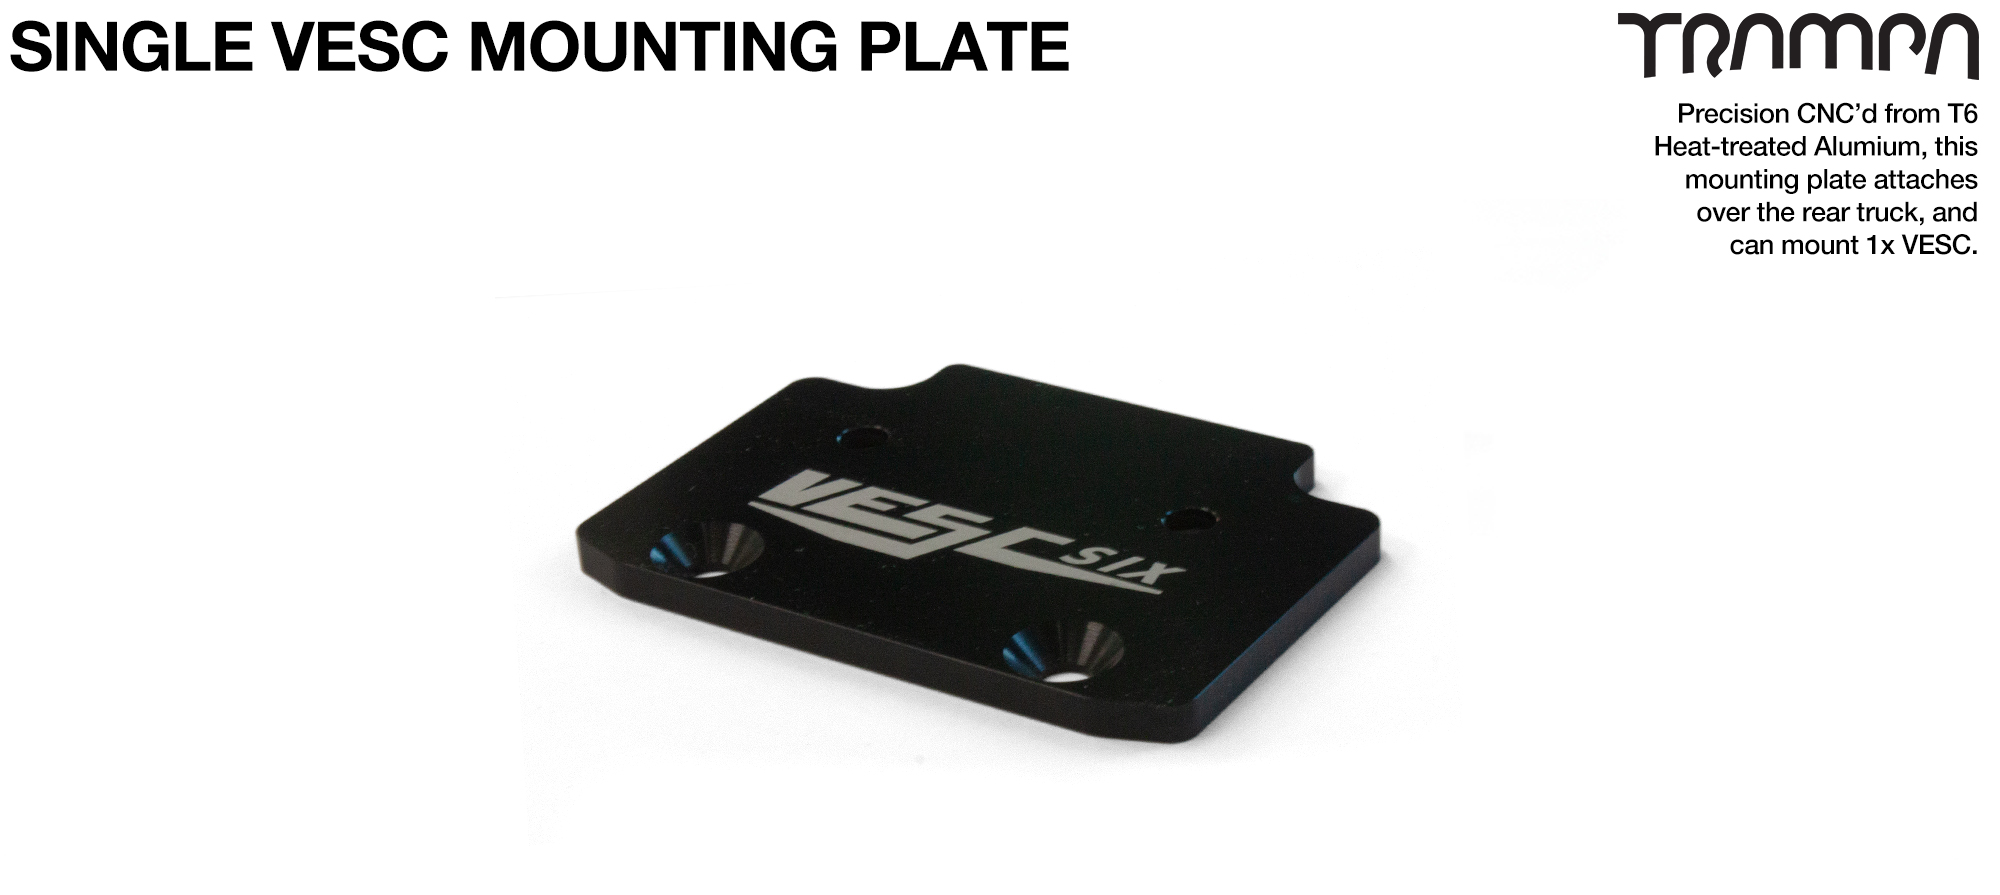 Please supply a SINGLE ALUMINIUM vesc mounting plate & Fixing Bolts (+£7.50)